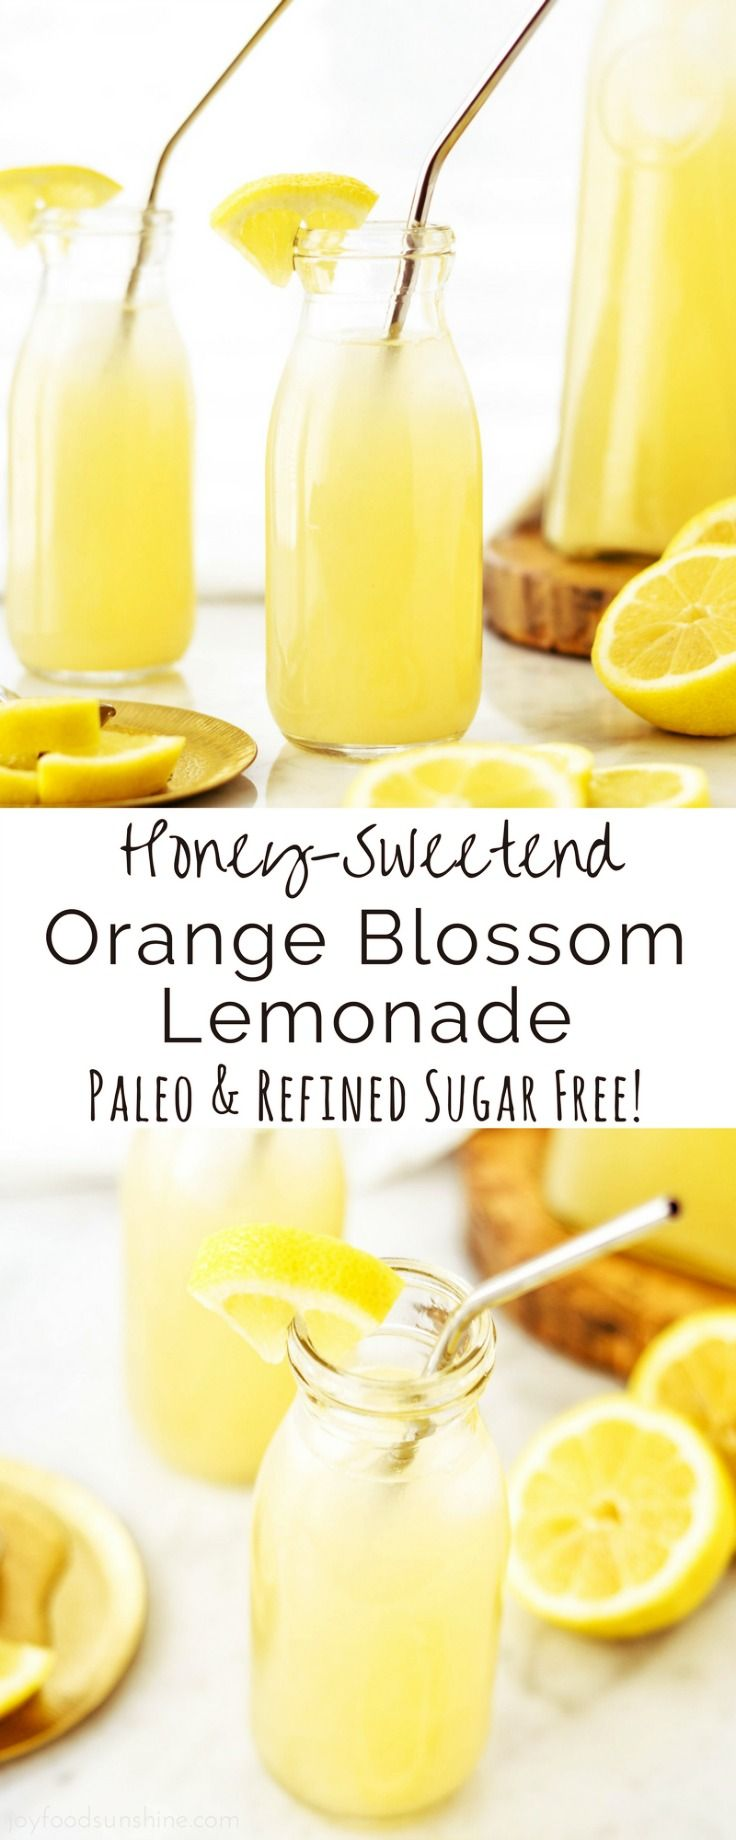 - Honey-Sweetened Orange Blossom Lemonade -   This Honey-Sweetened Orange Blossom Lemonade is made with only four ingredients and comes together in less than 5 minutes {with the help of a Vitamix}! If you don't have a Vitamix, you can use another high powered blender. I have also included stovetop direction in the recipe!  via: @joyfoodsunshine